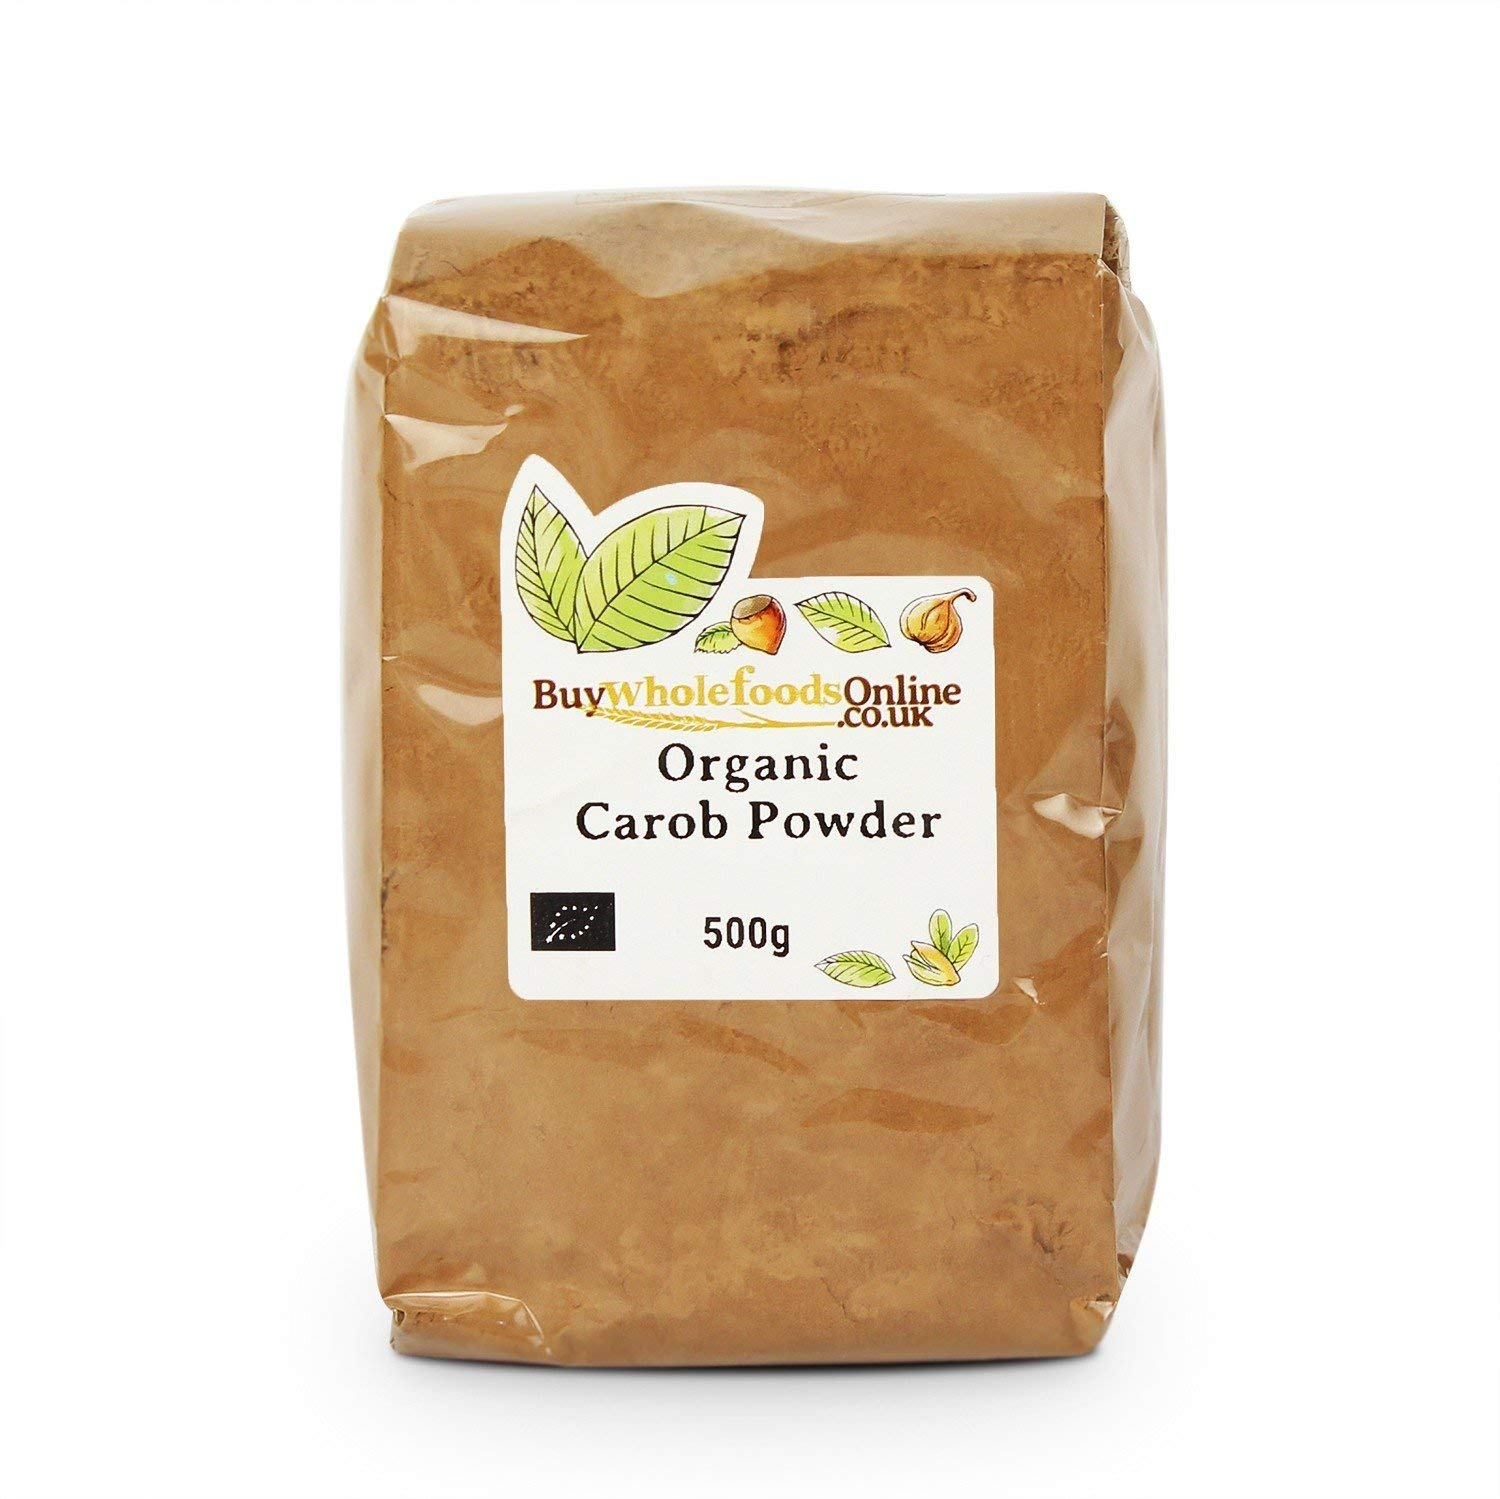 Organic Carob Powder 500g (Buy Whole Foods Online Ltd.)